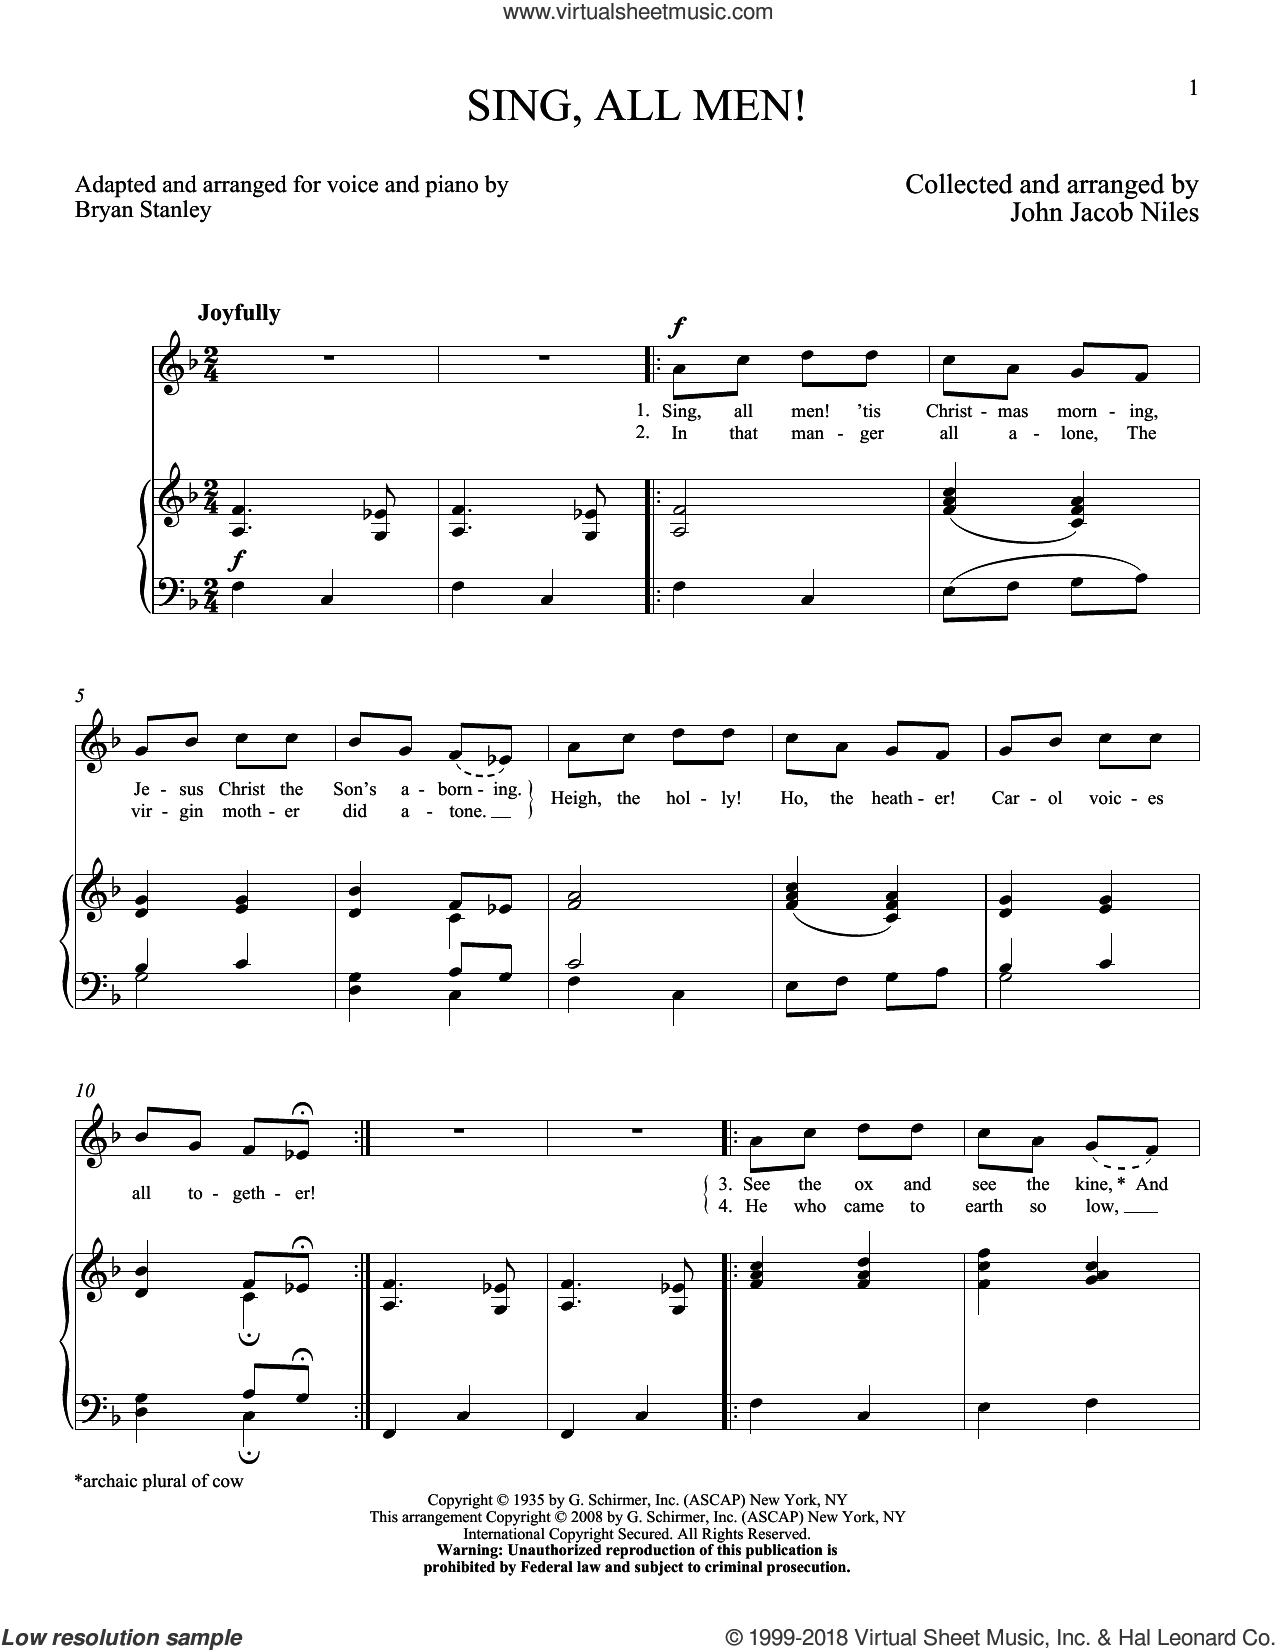 Sing, All Men! sheet music for voice and piano (High Voice) by John Jacob Niles, intermediate skill level